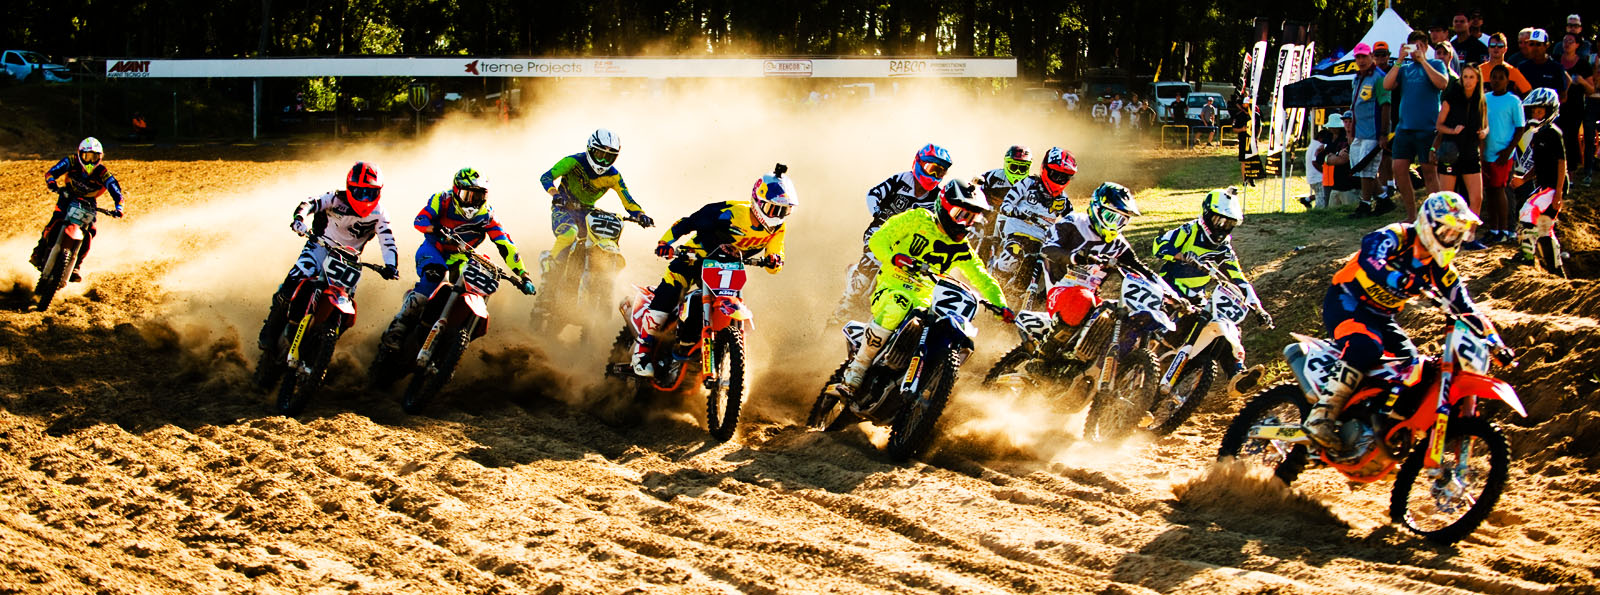 2016 SA Motocross Nationals Rover MX Race Report